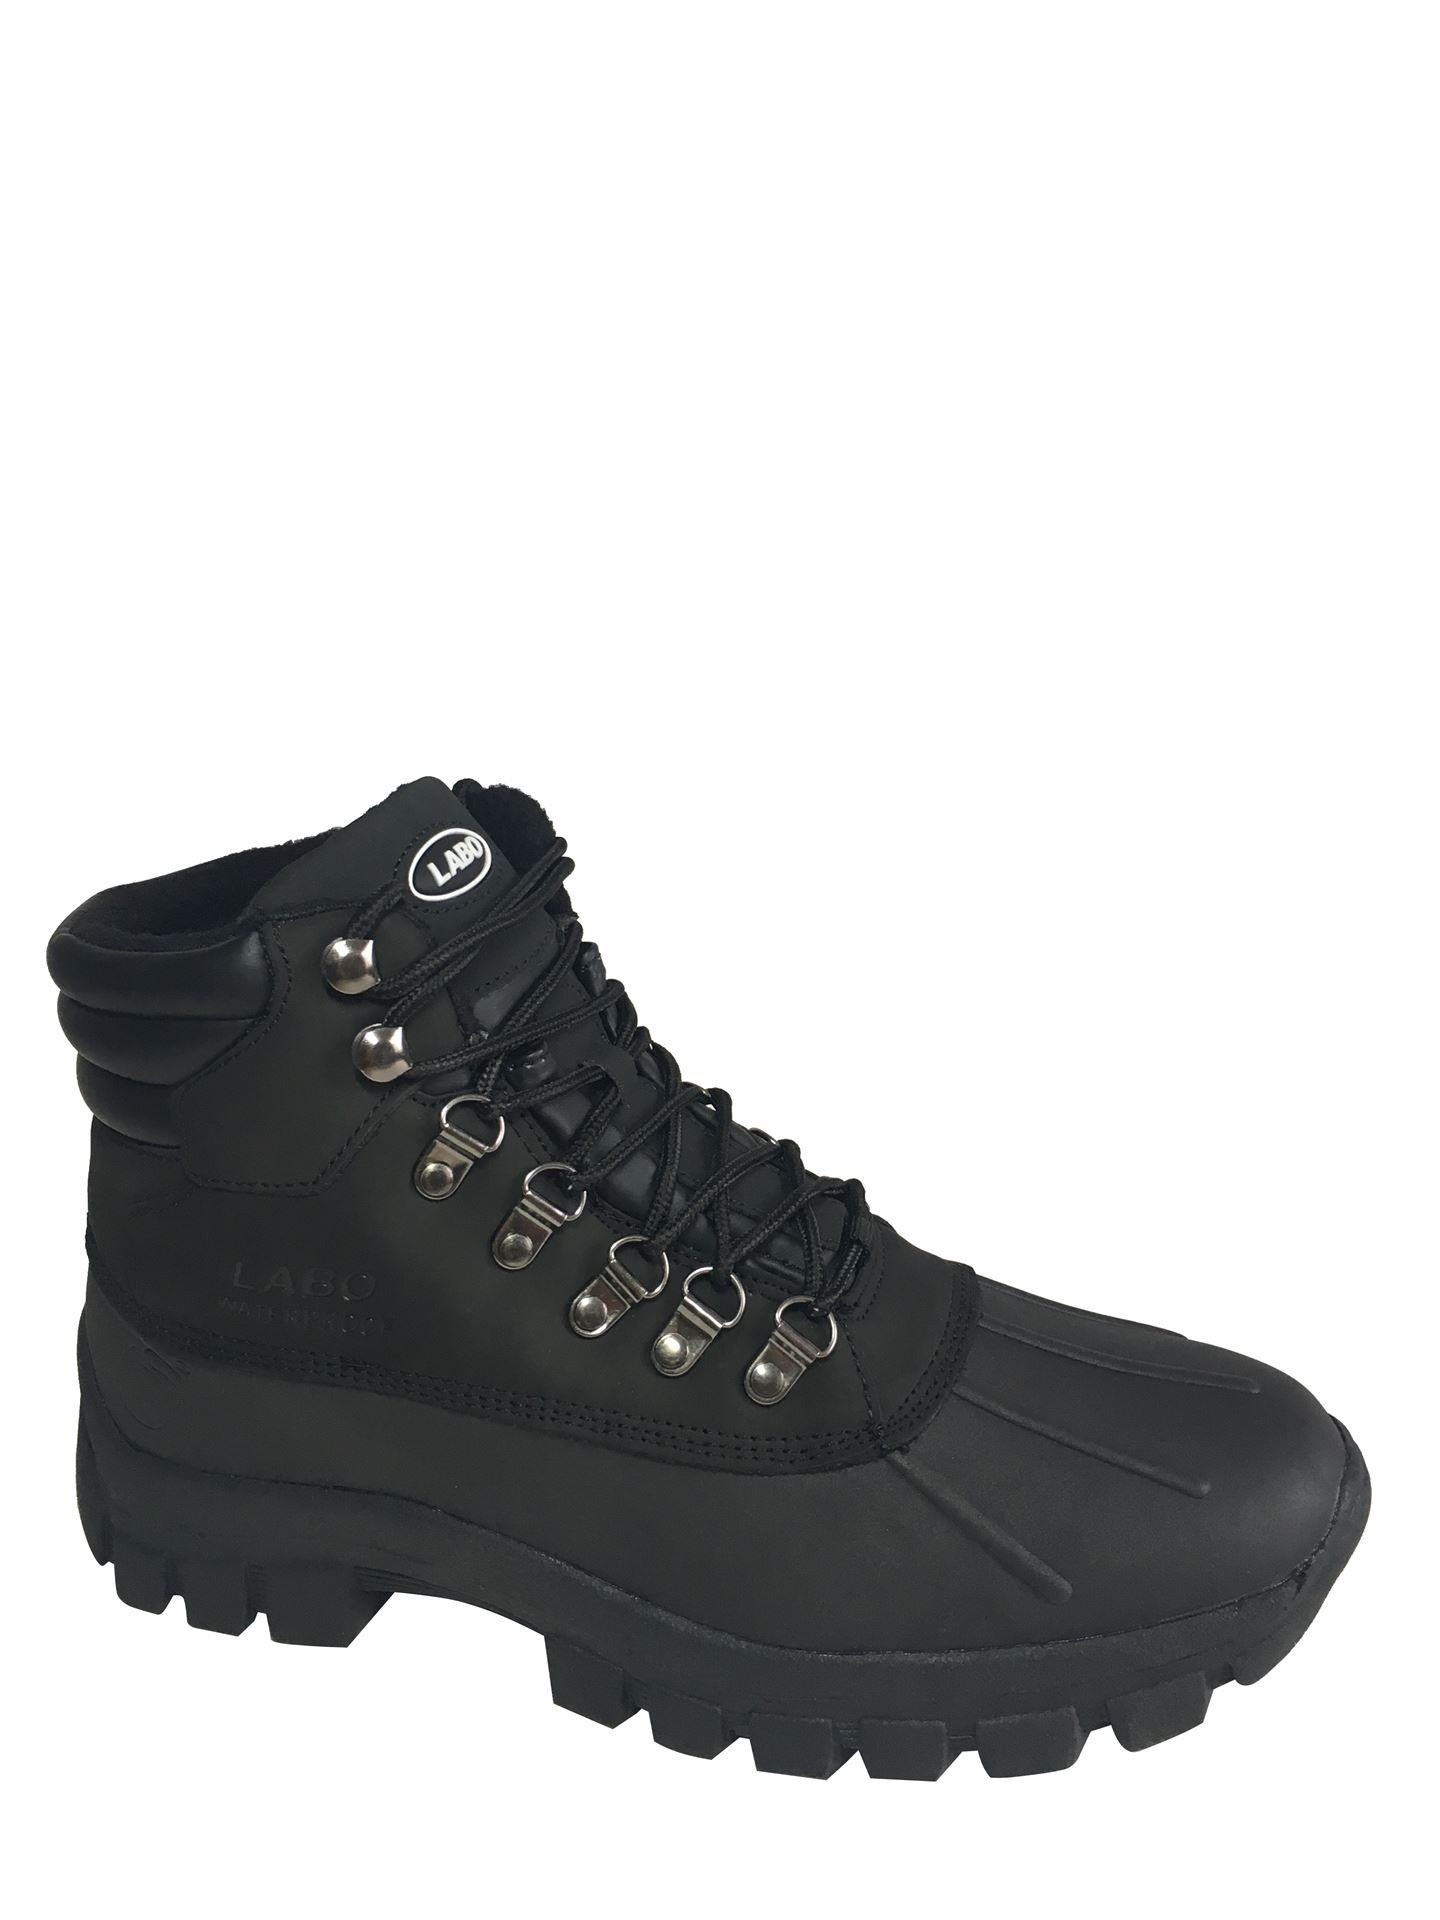 LABO Men's Winter Snow Boots Shoes Waterproof Insulated Lace up (D,M) 602 BLACK-10